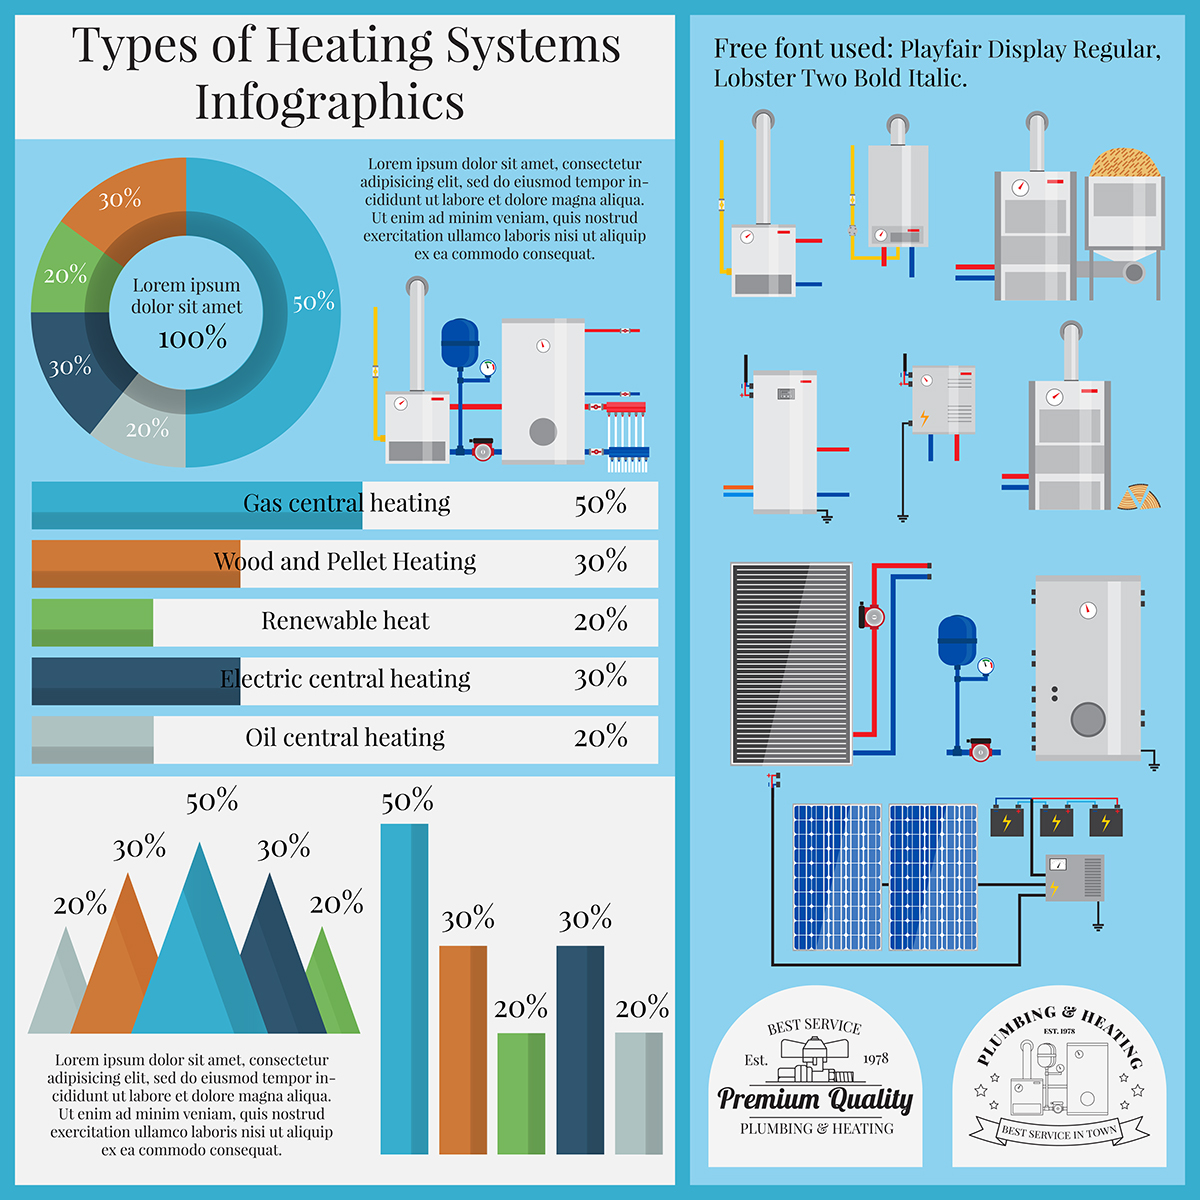 Types of heating systems infographics on Behance